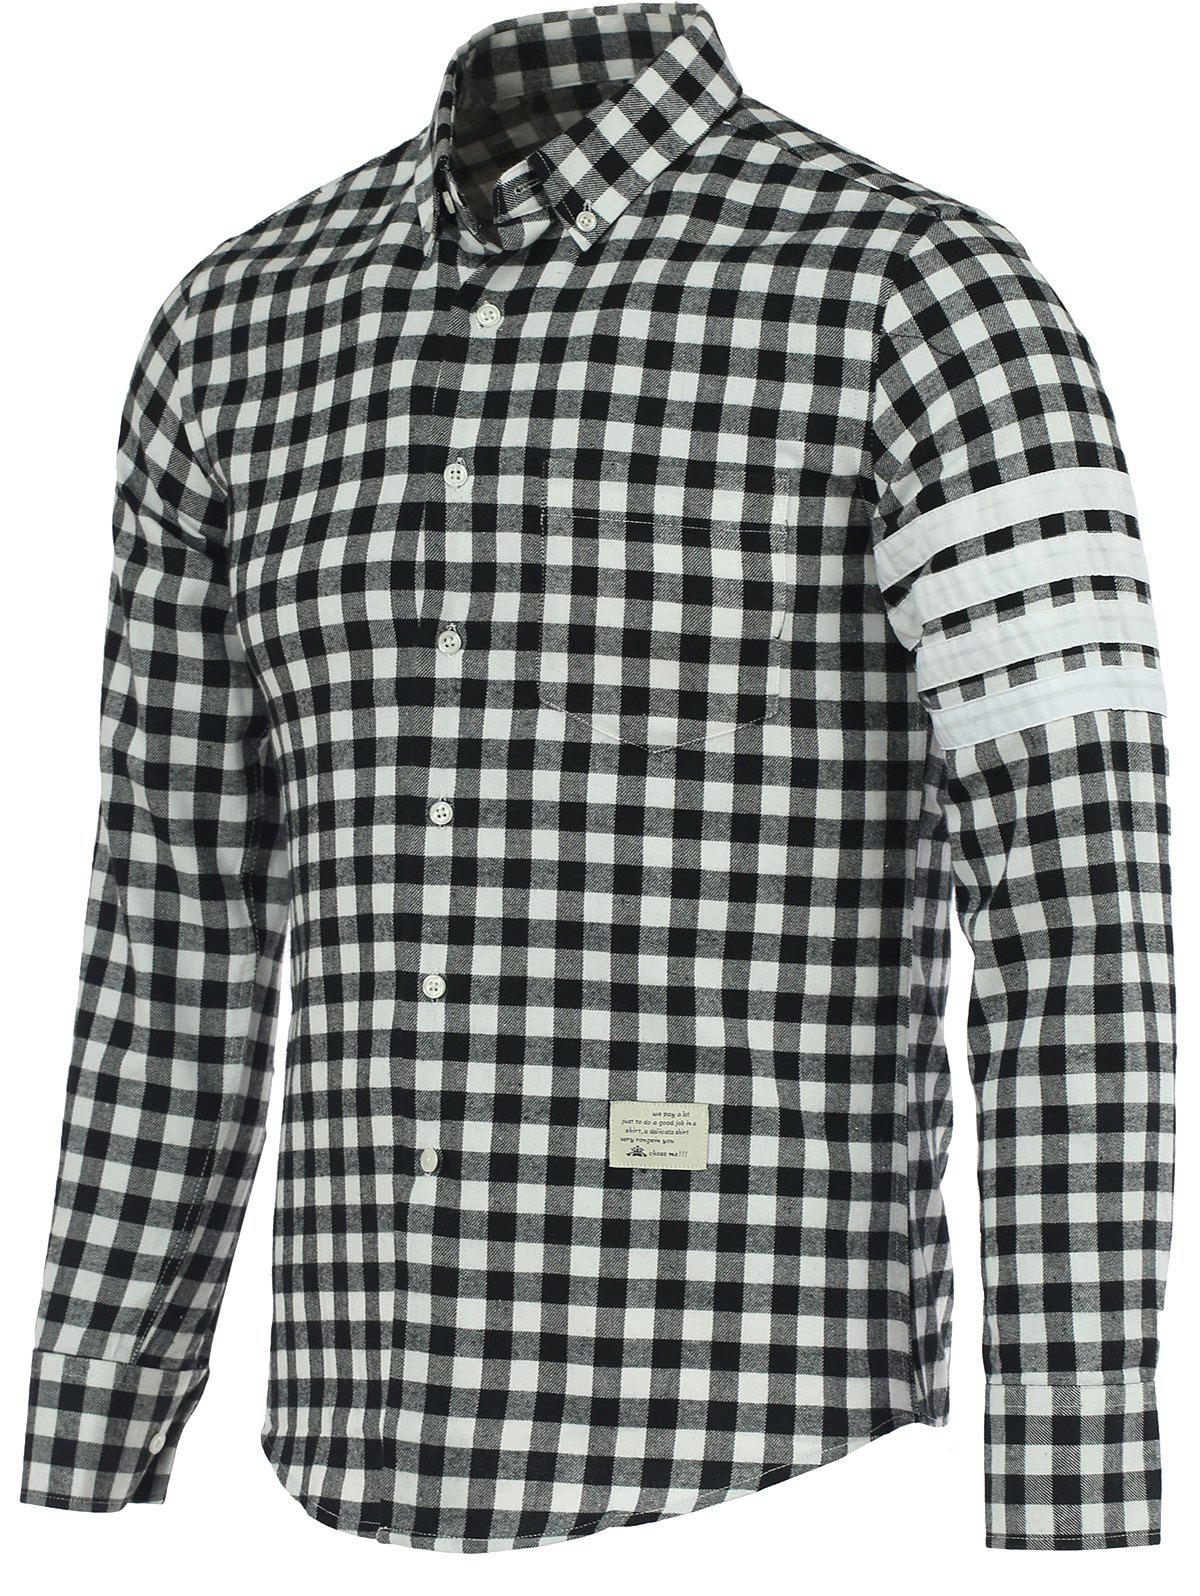 Small Grid Turn-Down Collar Long Sleeve Shirt - BLACK/GREY 3XL